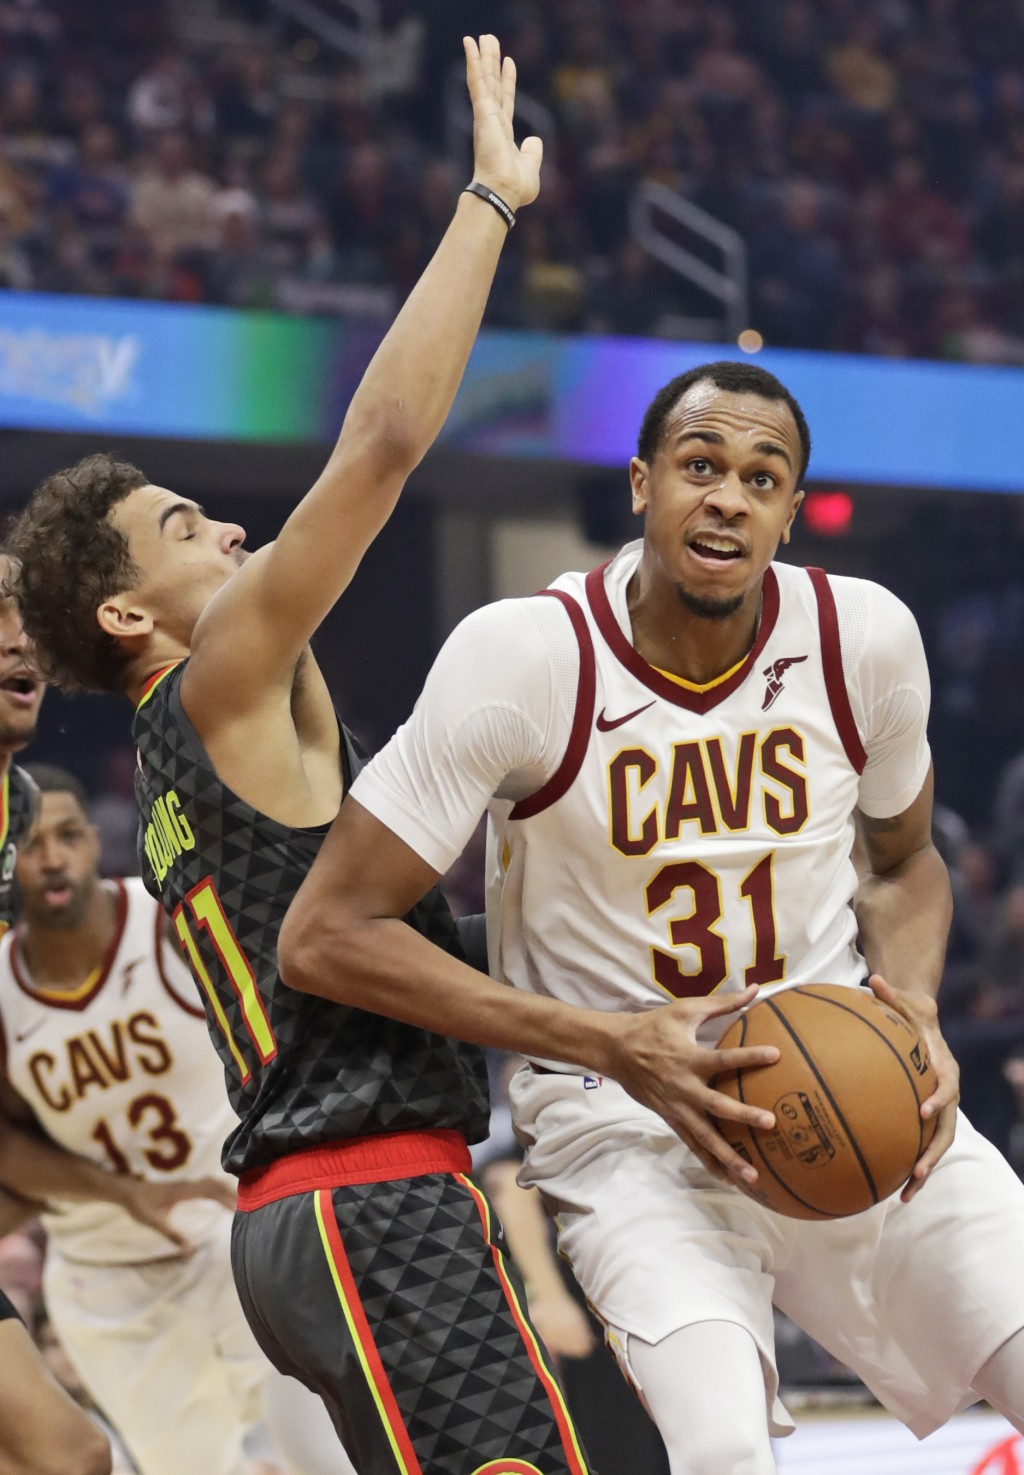 Cleveland Cavaliers' John Henson, right, drives past Atlanta Hawks' Trae Young during the first half of an NBA basketball game Monday, Dec. 23, 2019, ...